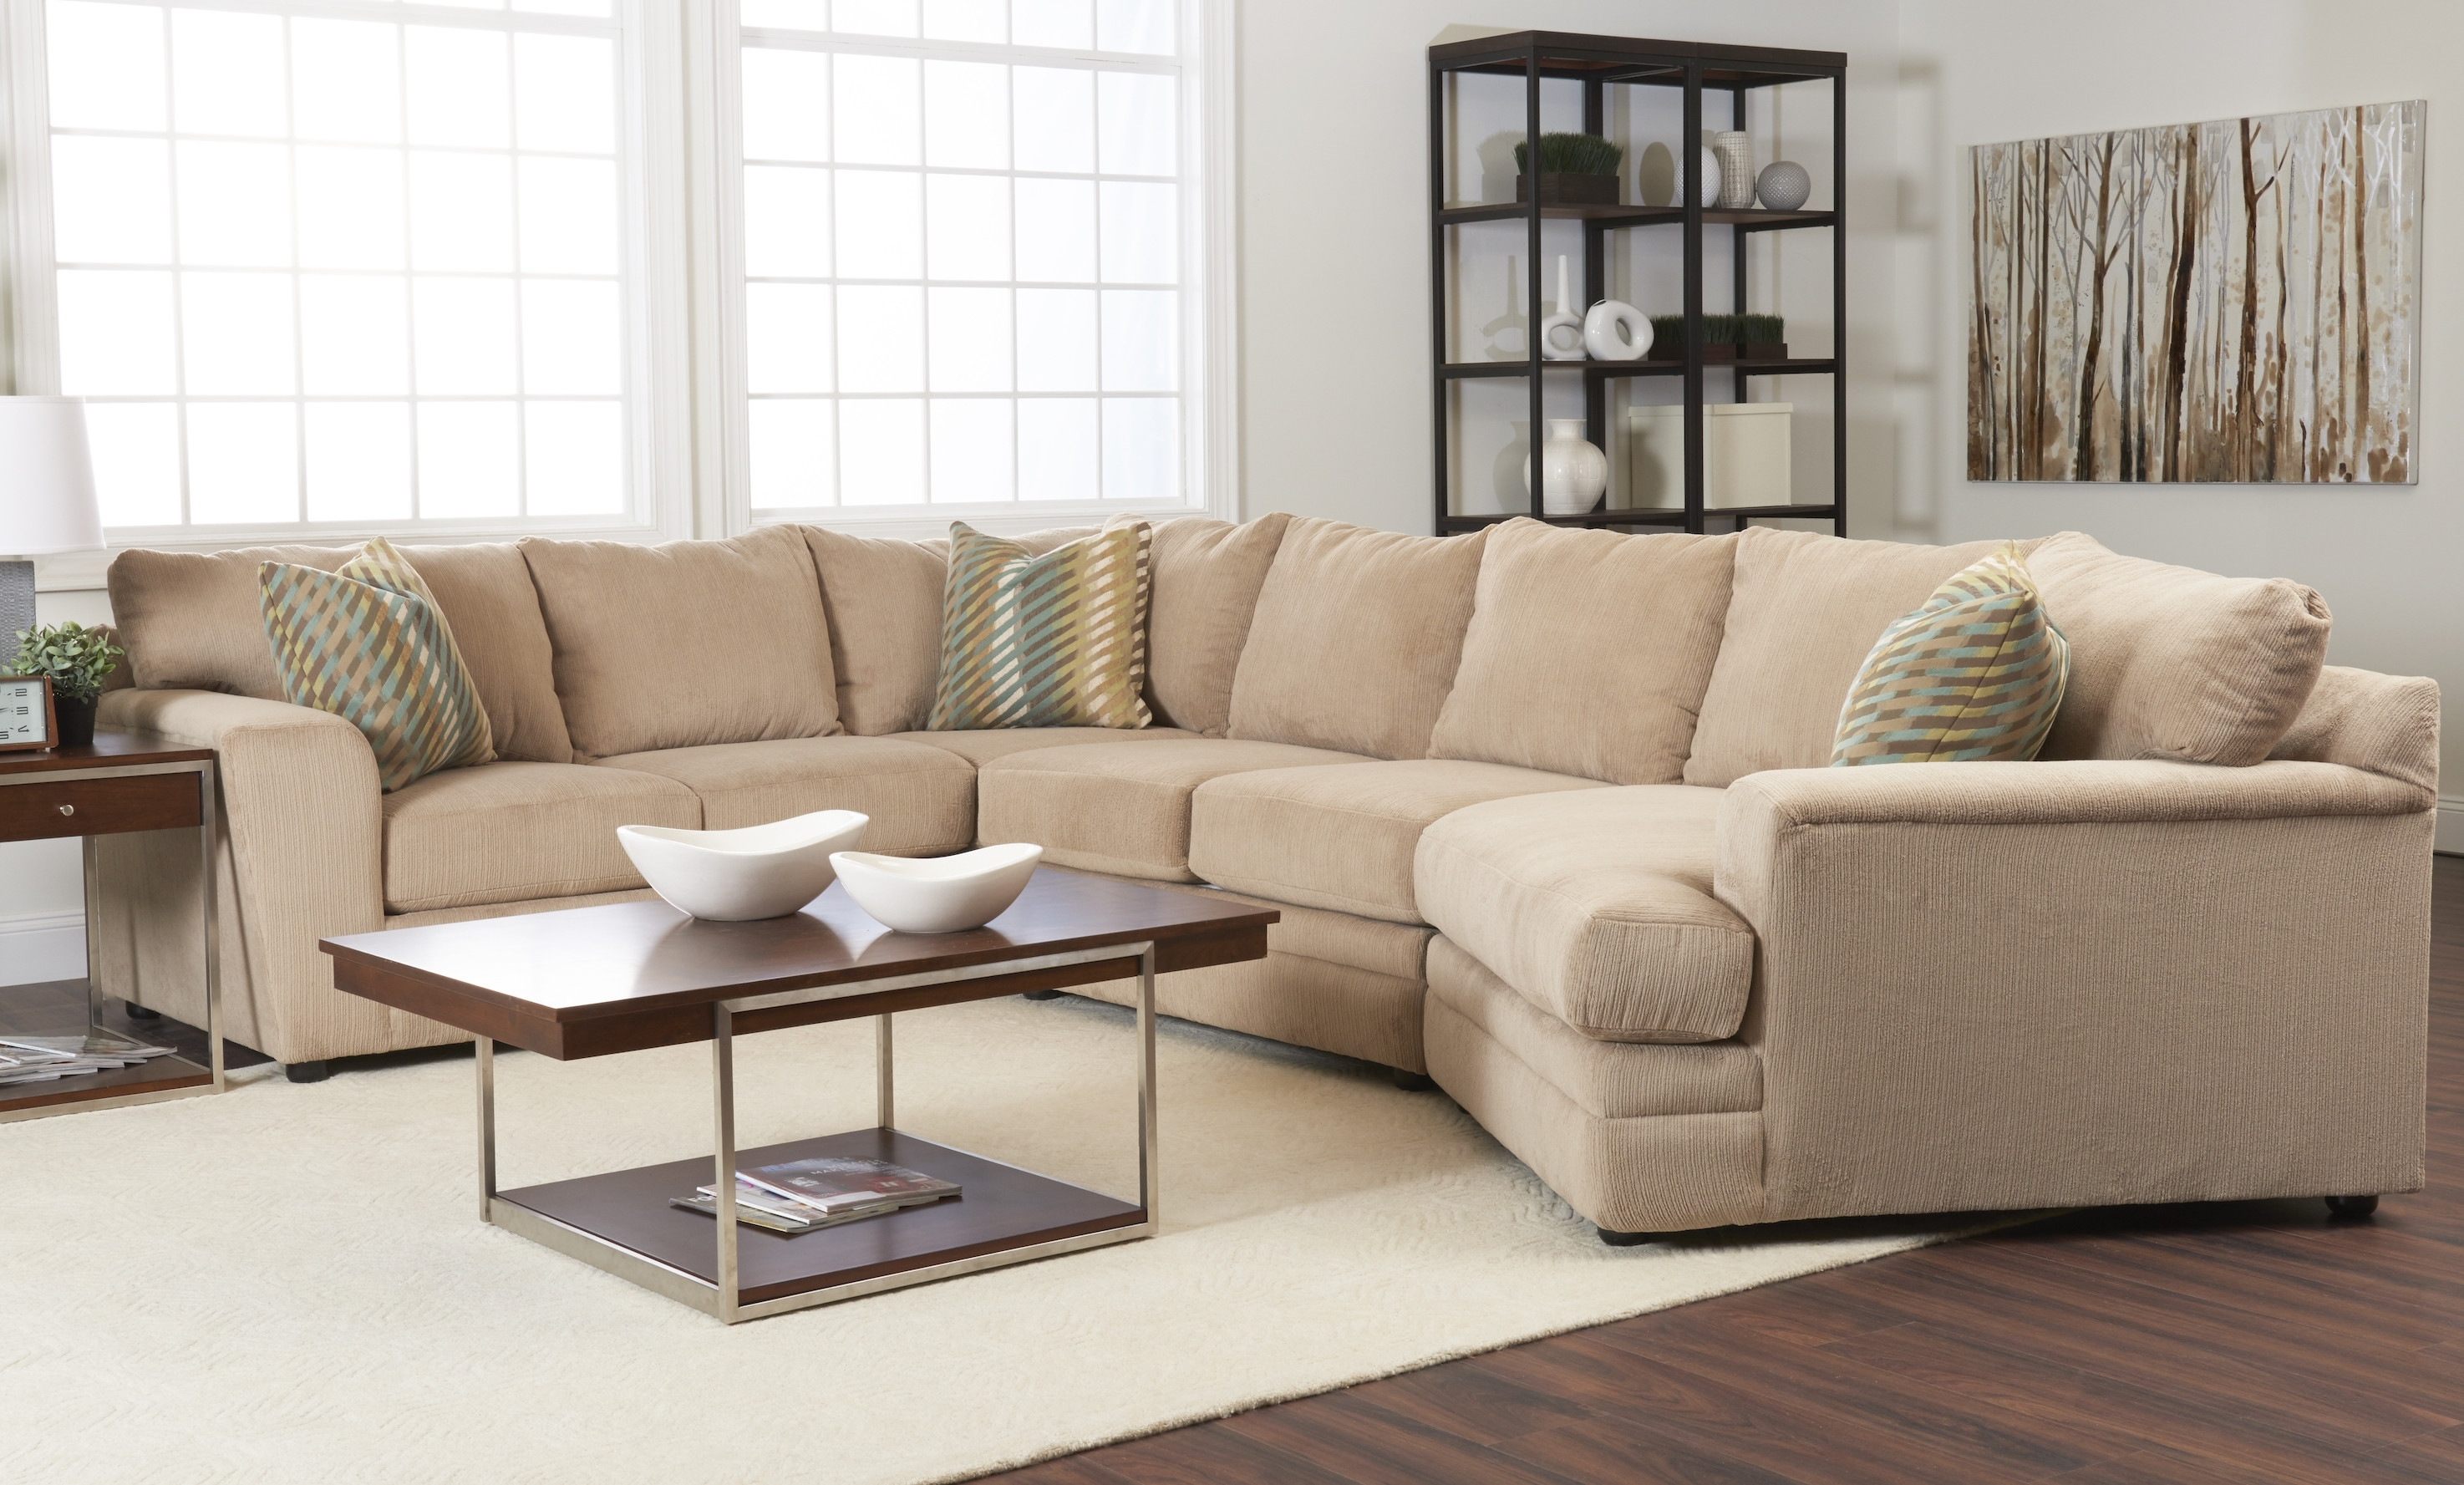 Lane Furniture Sectional Sofa Within Visalia Ca Sectional Sofas (Image 8 of 10)